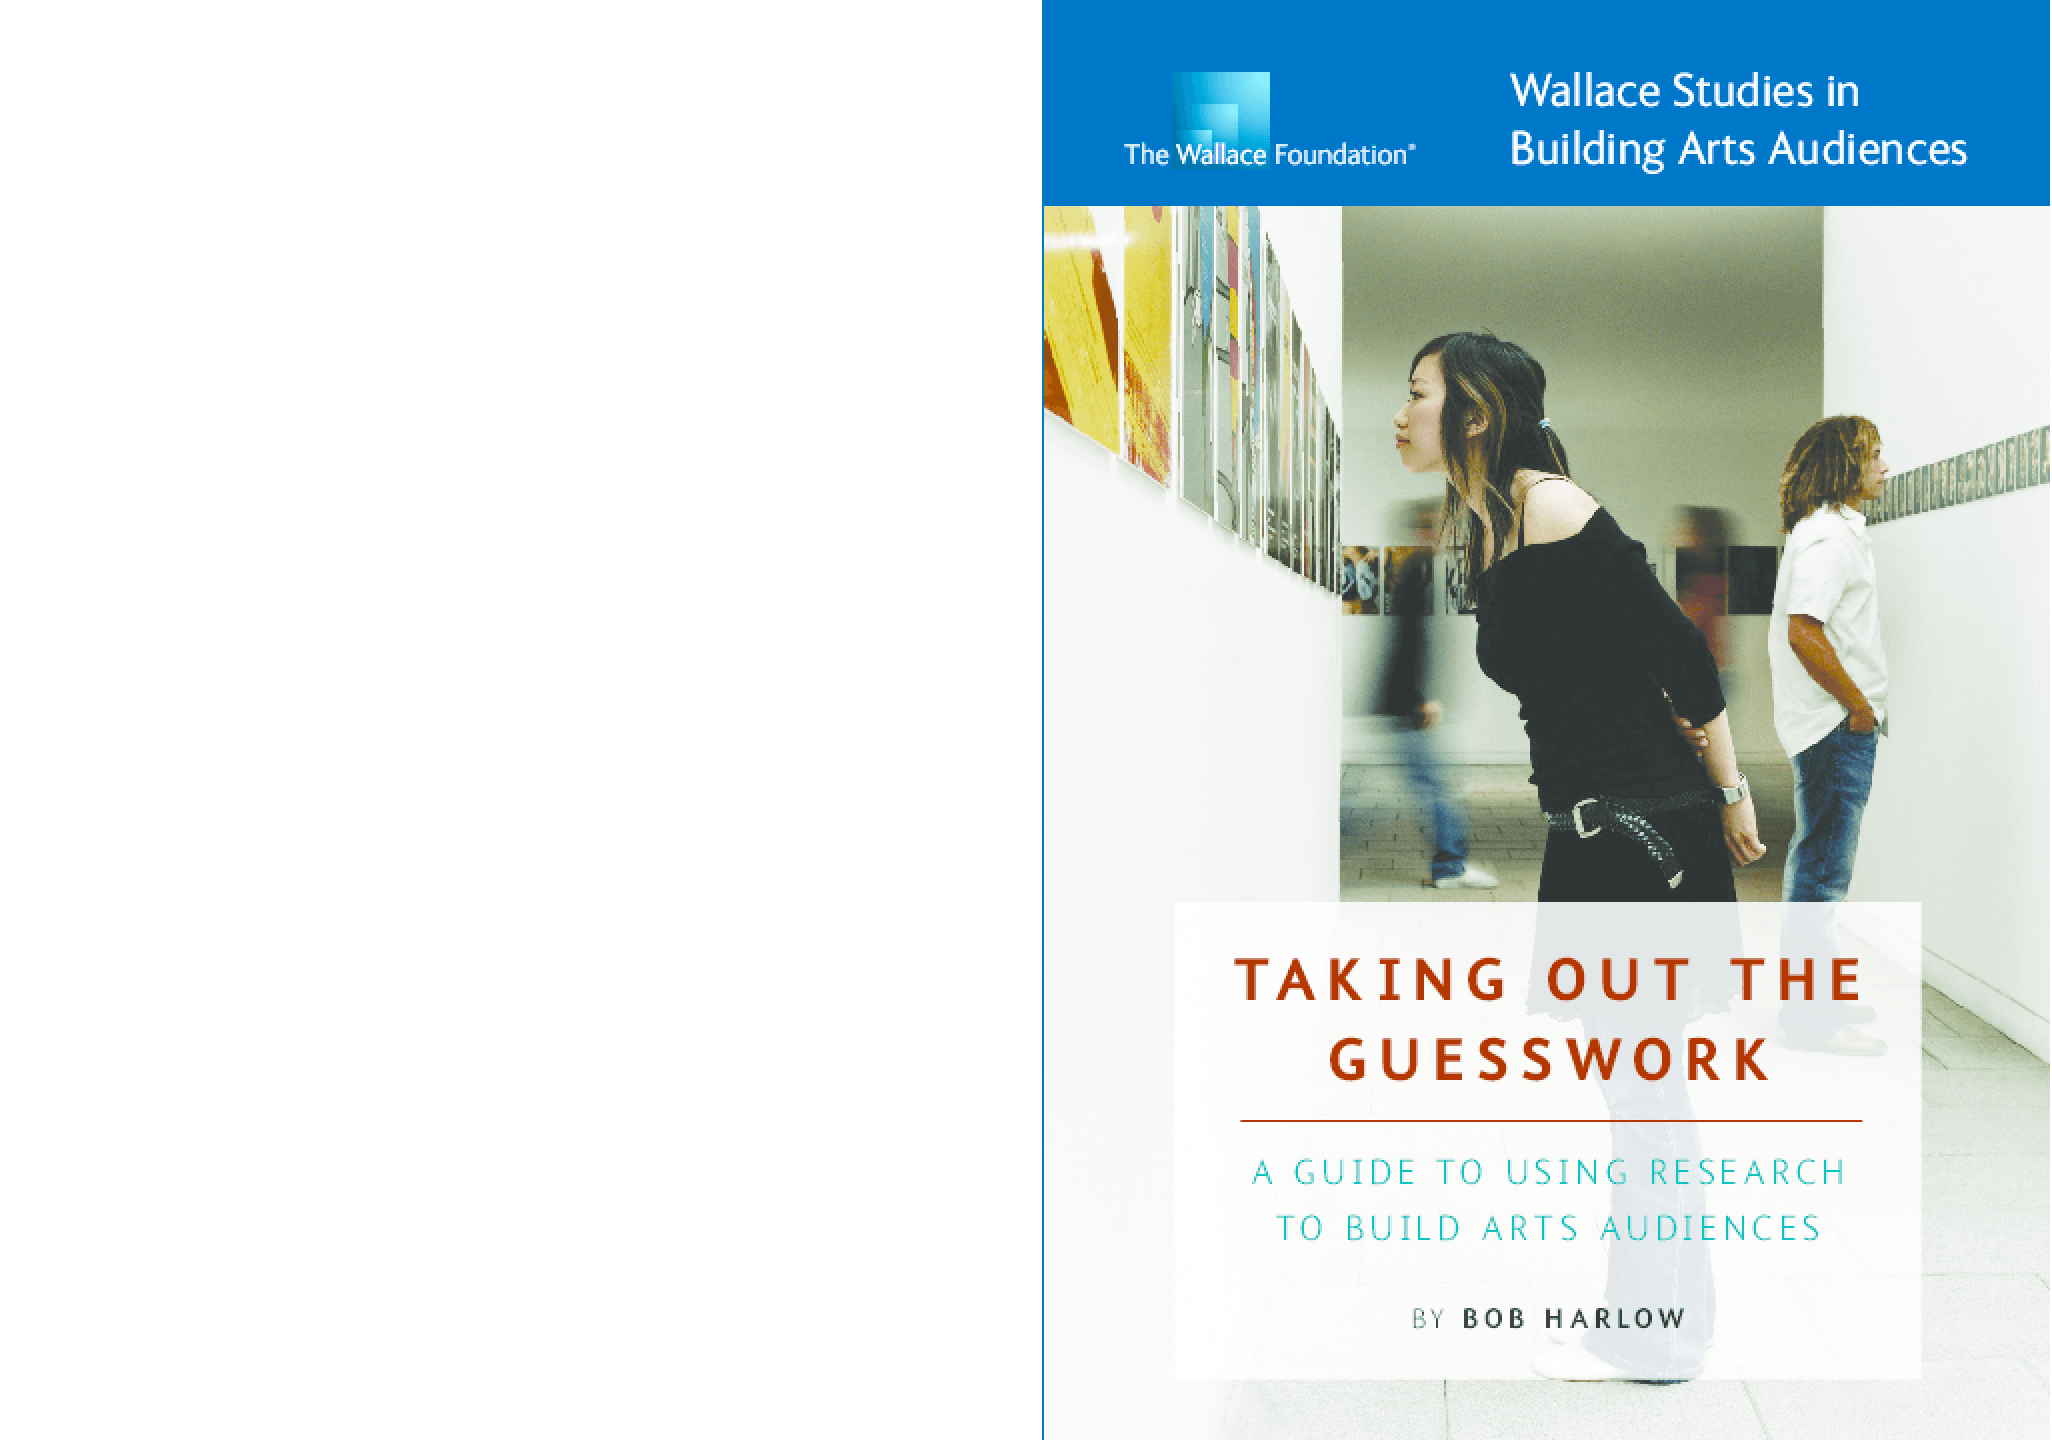 Taking Out the Guess Work: A Guide To Using Research To Build Arts Audiences